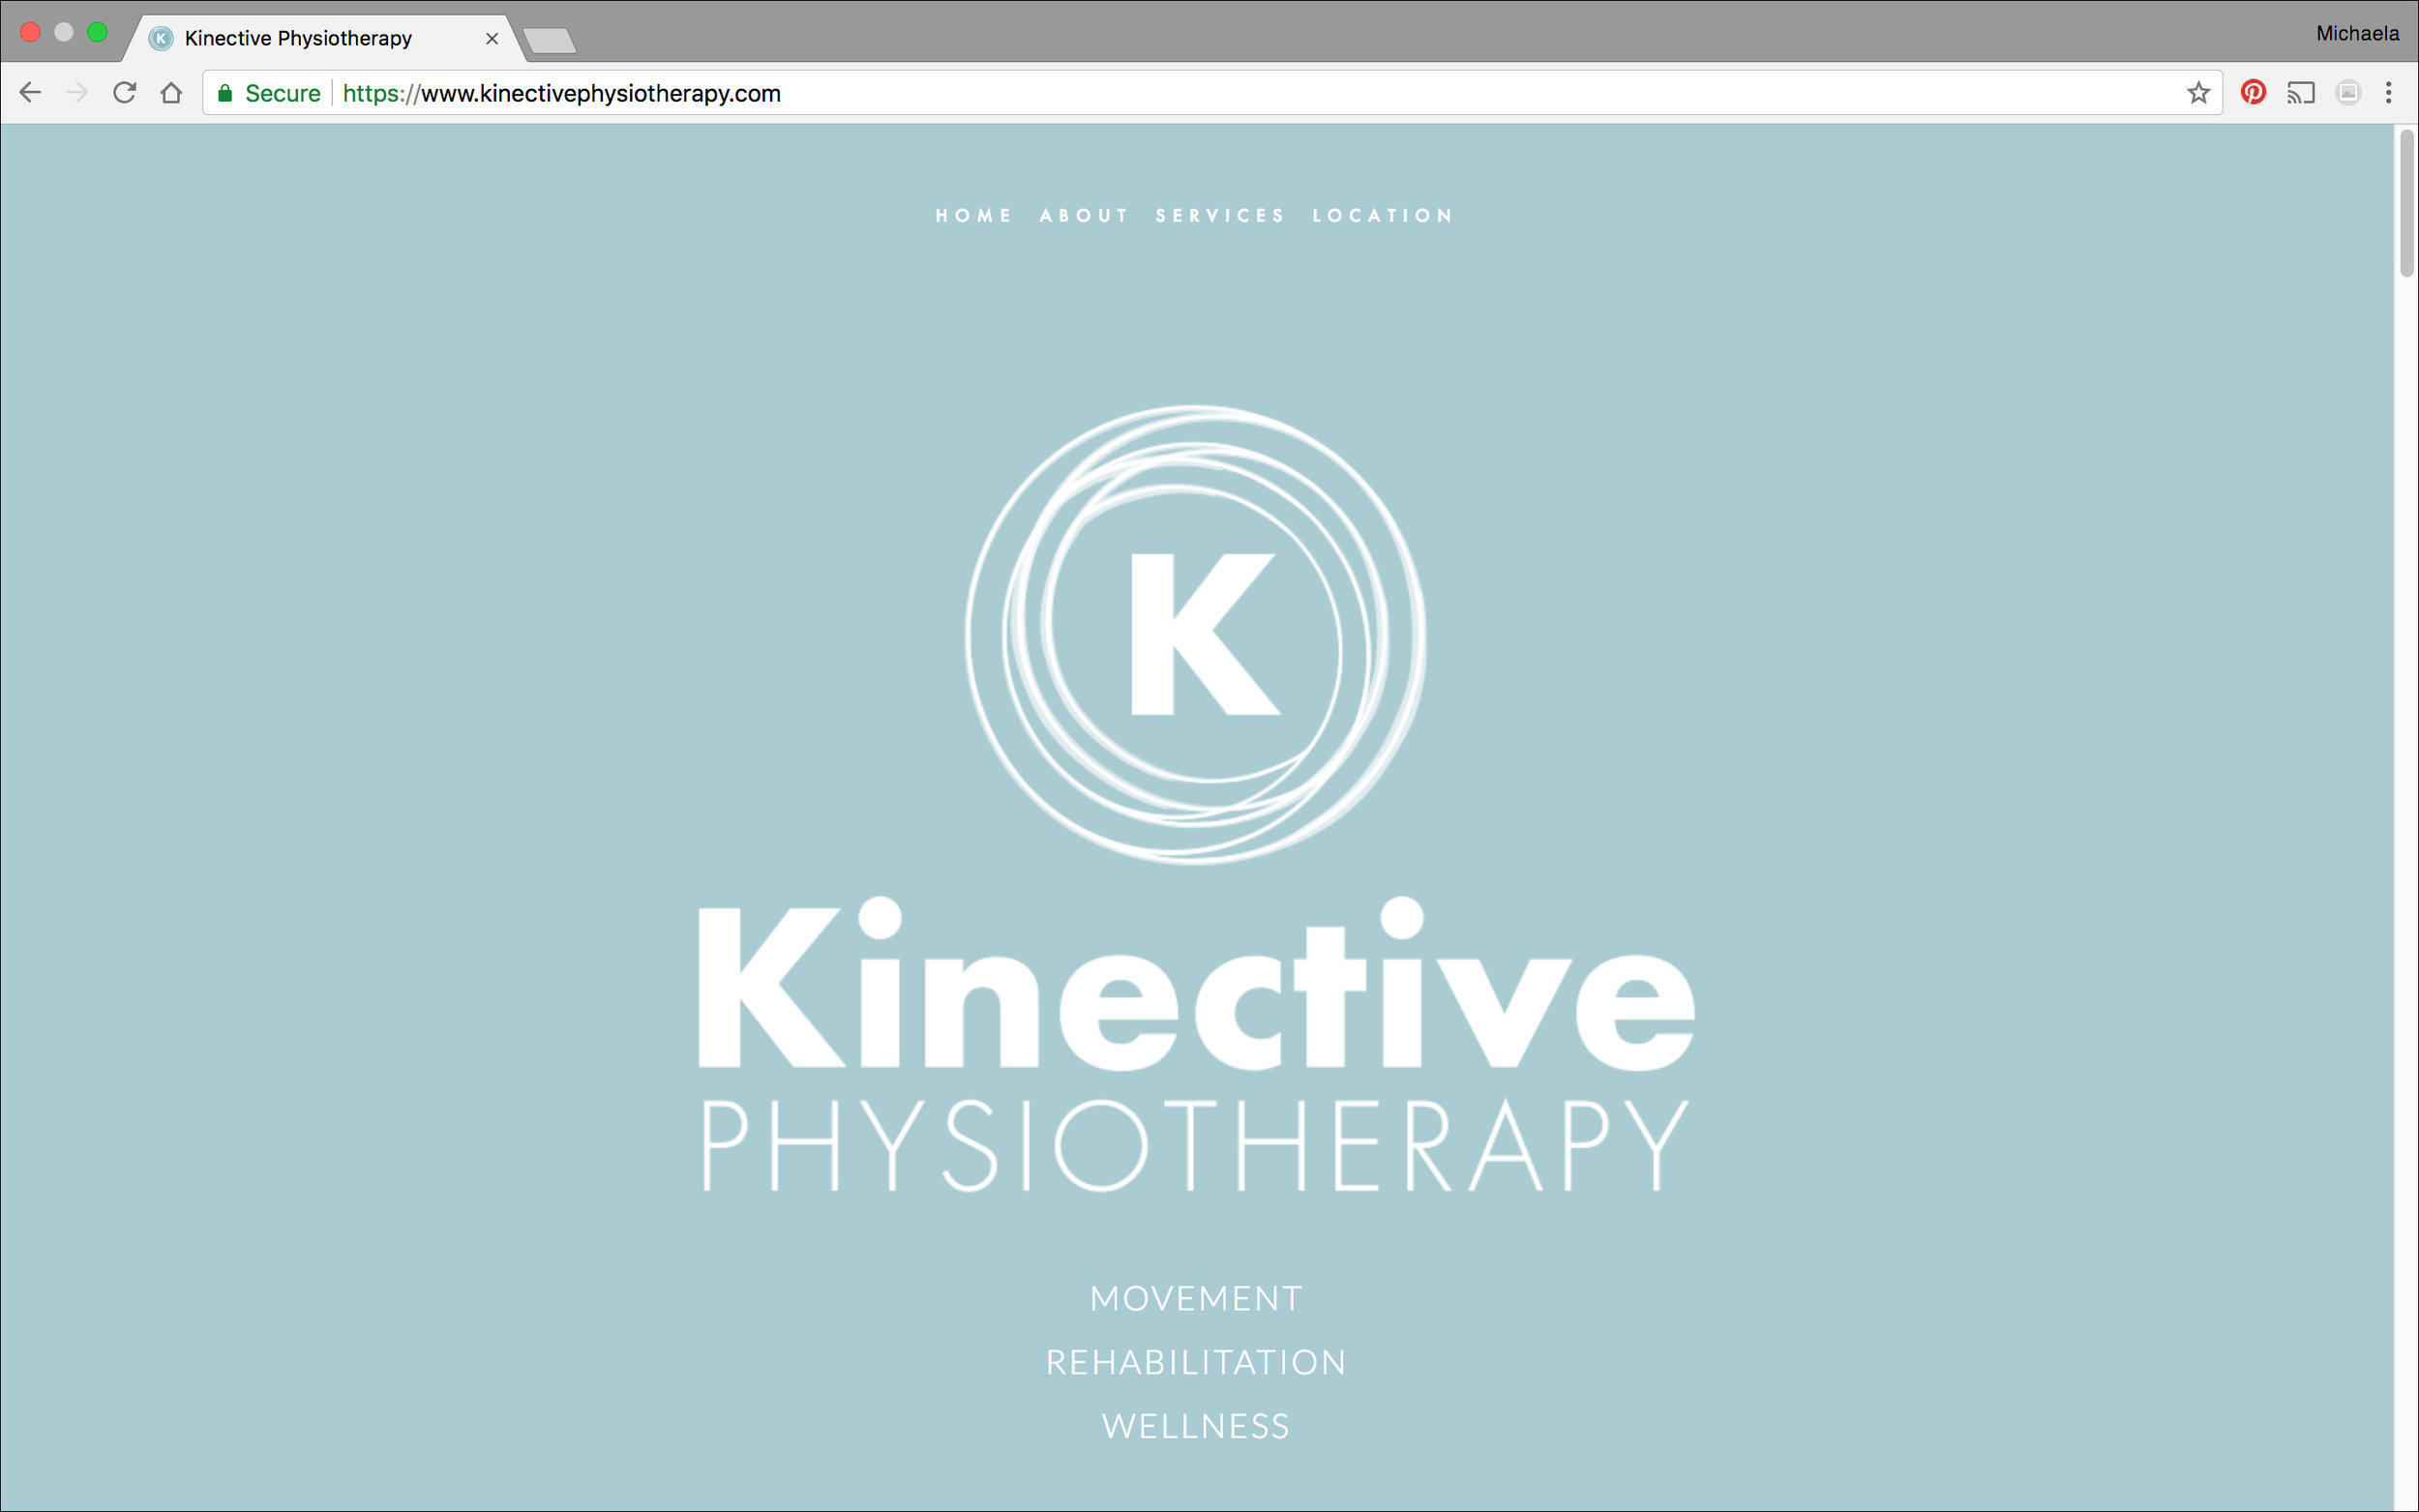 KINNECTIVE PHYSIOTHERAPY